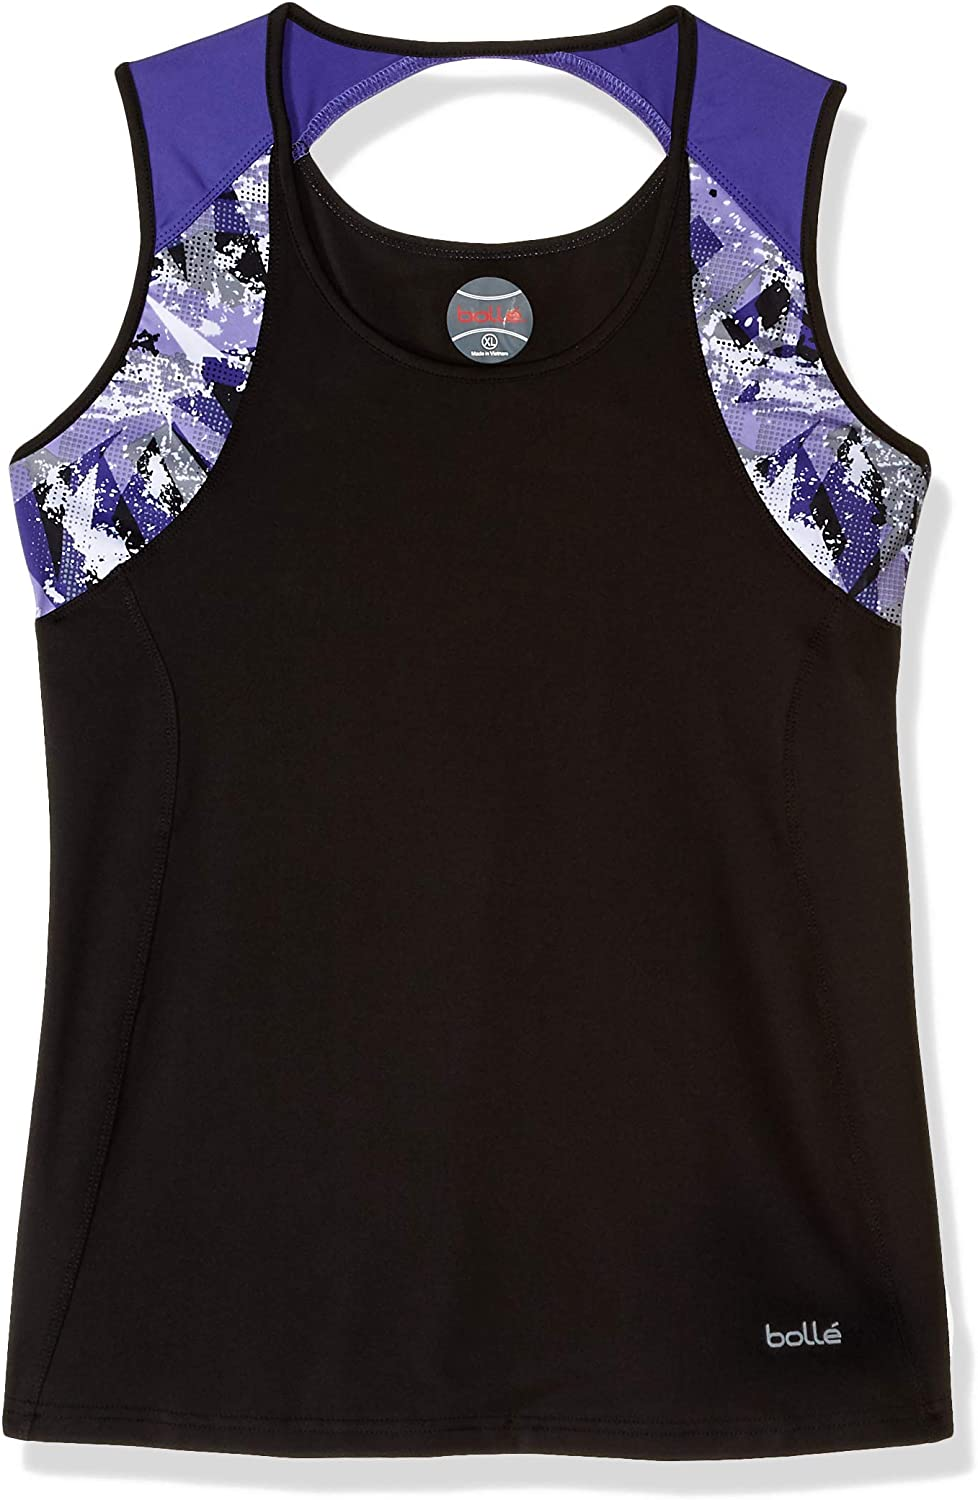 Bollé Purple Passion Scoop Neck Tennis Tank, Purple Passion